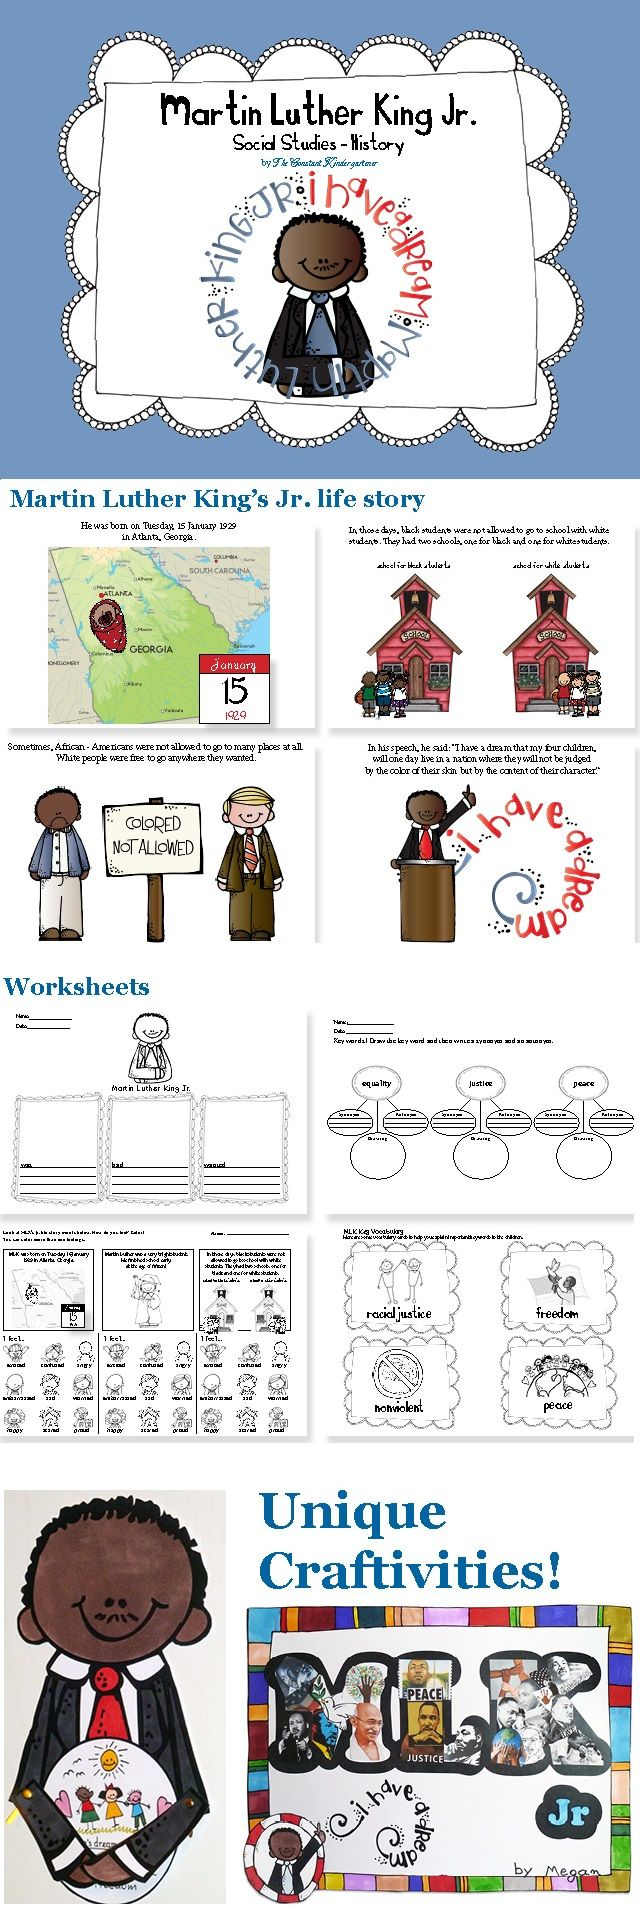 Martin Luther Kings Jr History For Children In Kindergarten And First Grade With Literacy Worksheets